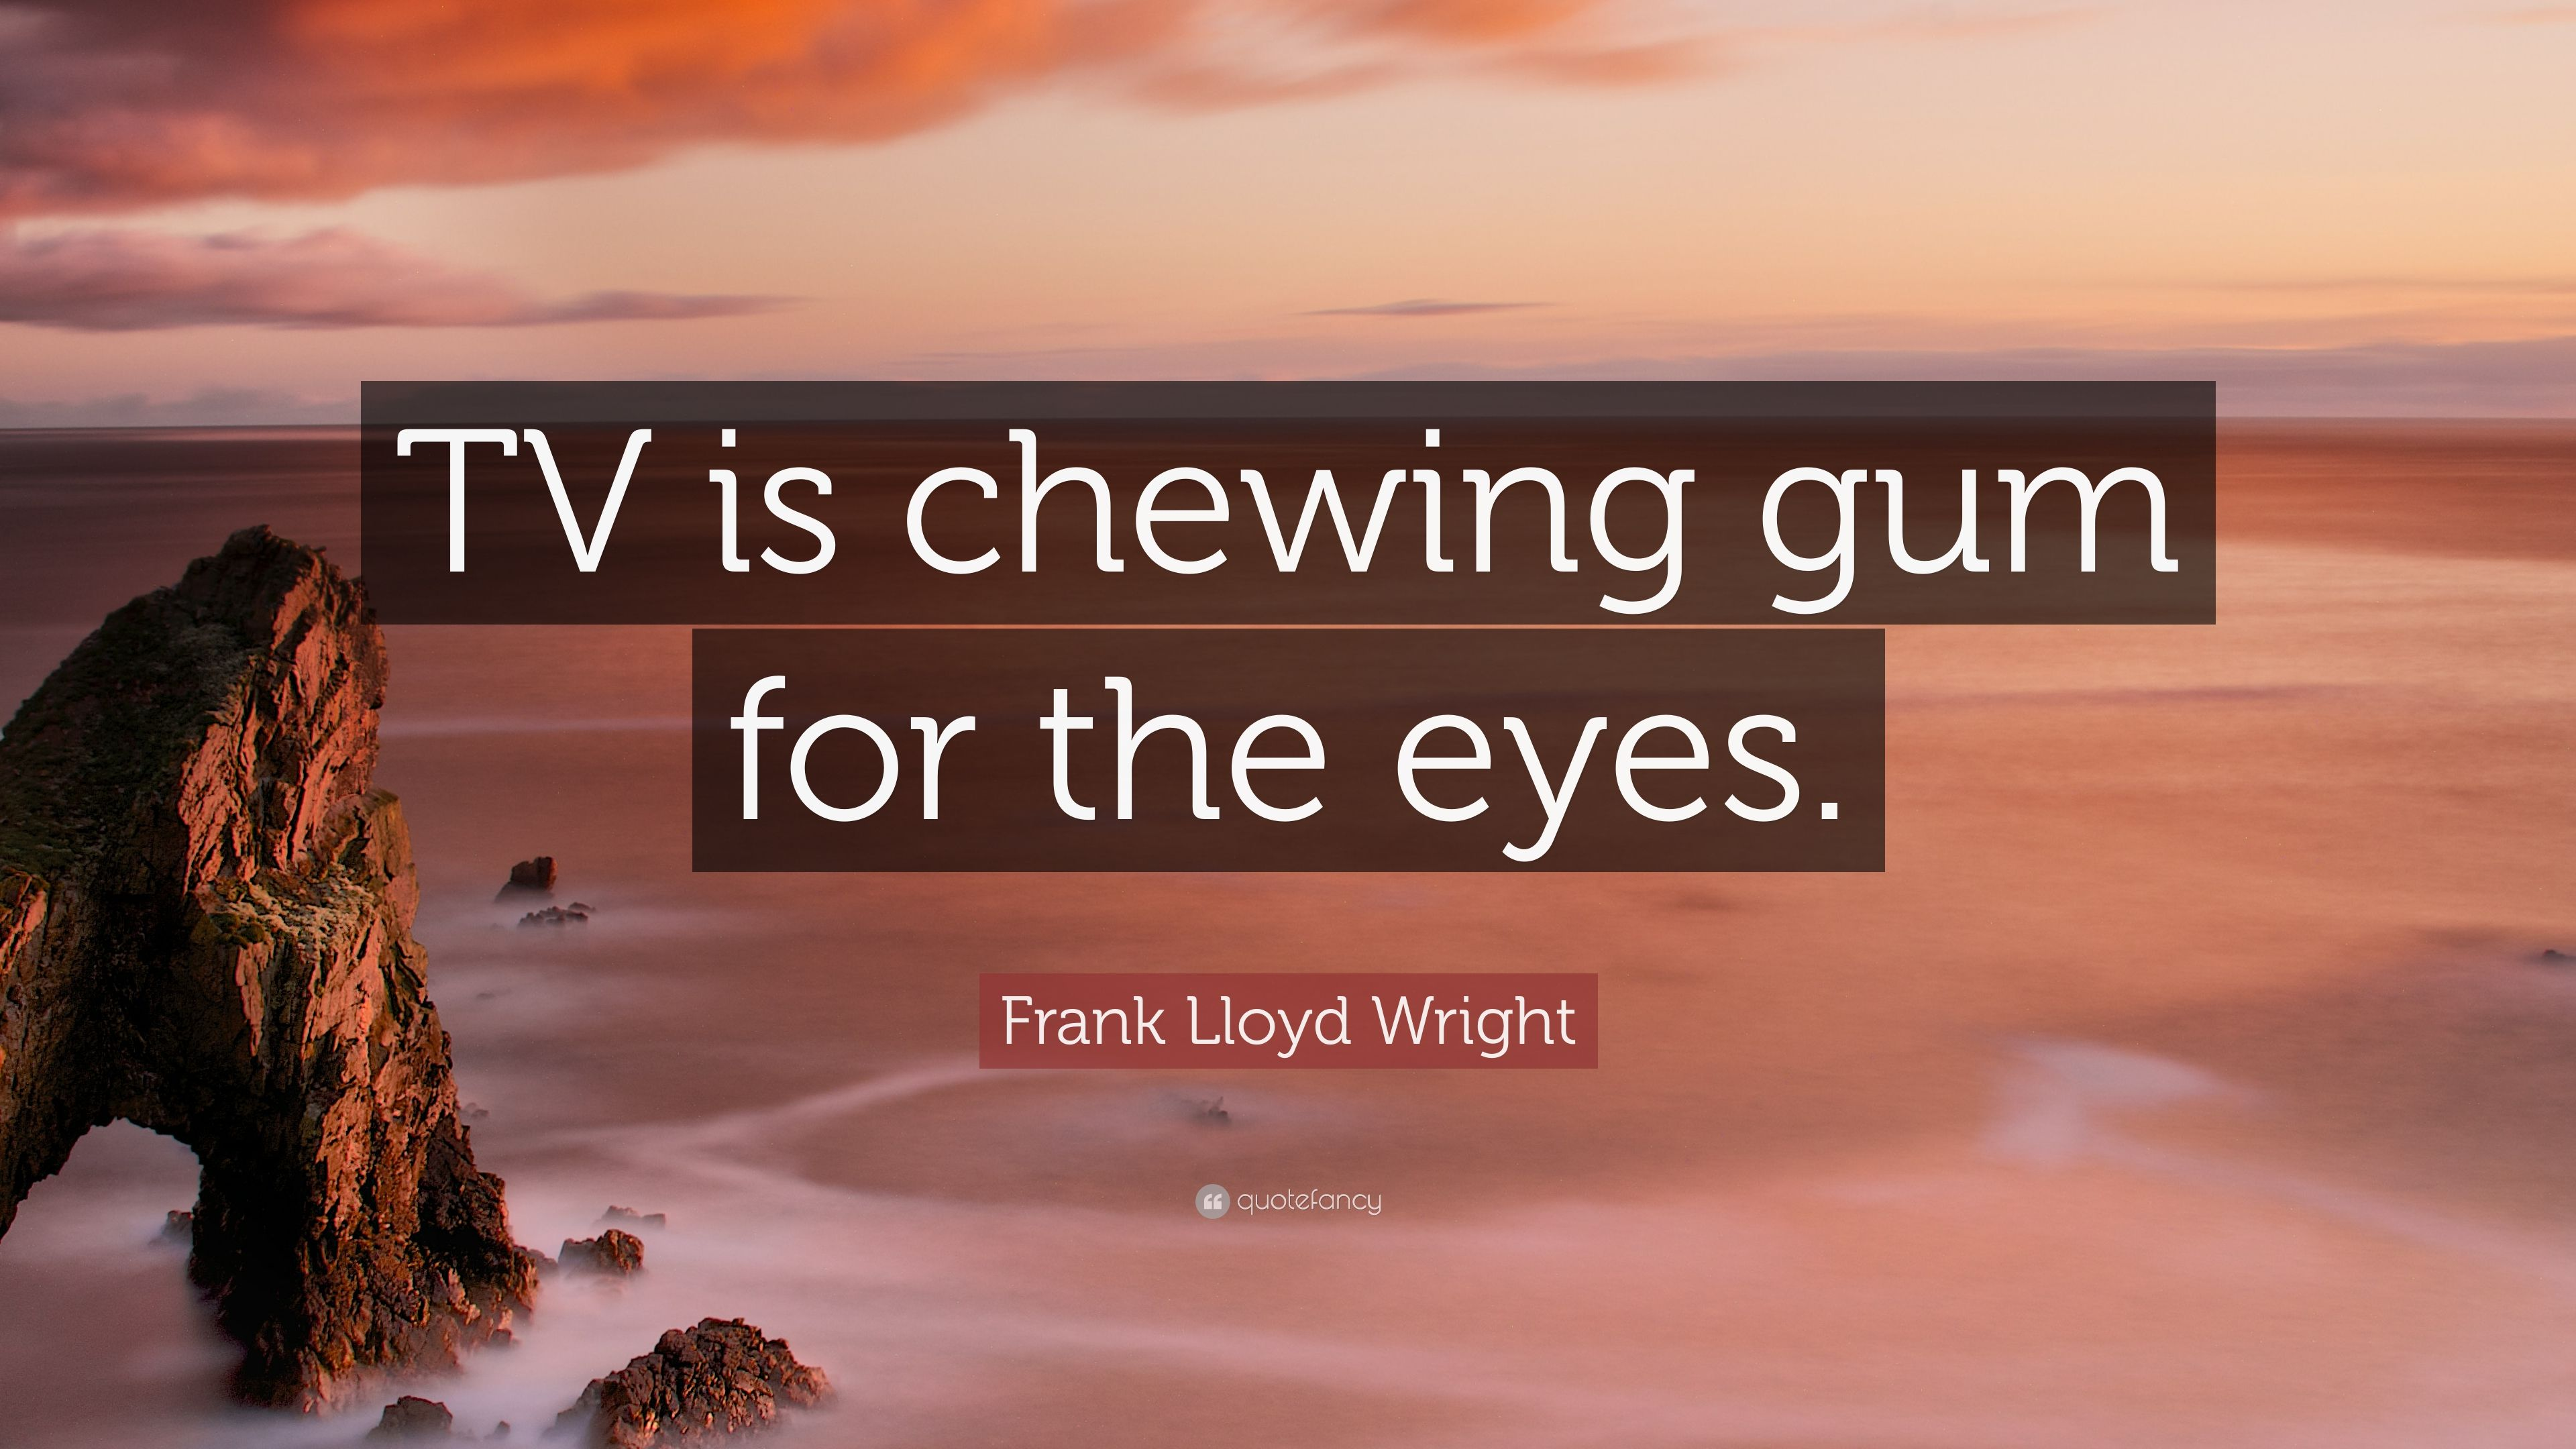 """watching tv is chewing gum for the eyes """"so much of tv seems to be chewing gum for the eyes tv desperately needs more self-reliance and pride in the medium"""" tv desperately needs more self-reliance and pride in the medium"""" by 1958 the remark was being credited to the architect frank lloyd wright."""